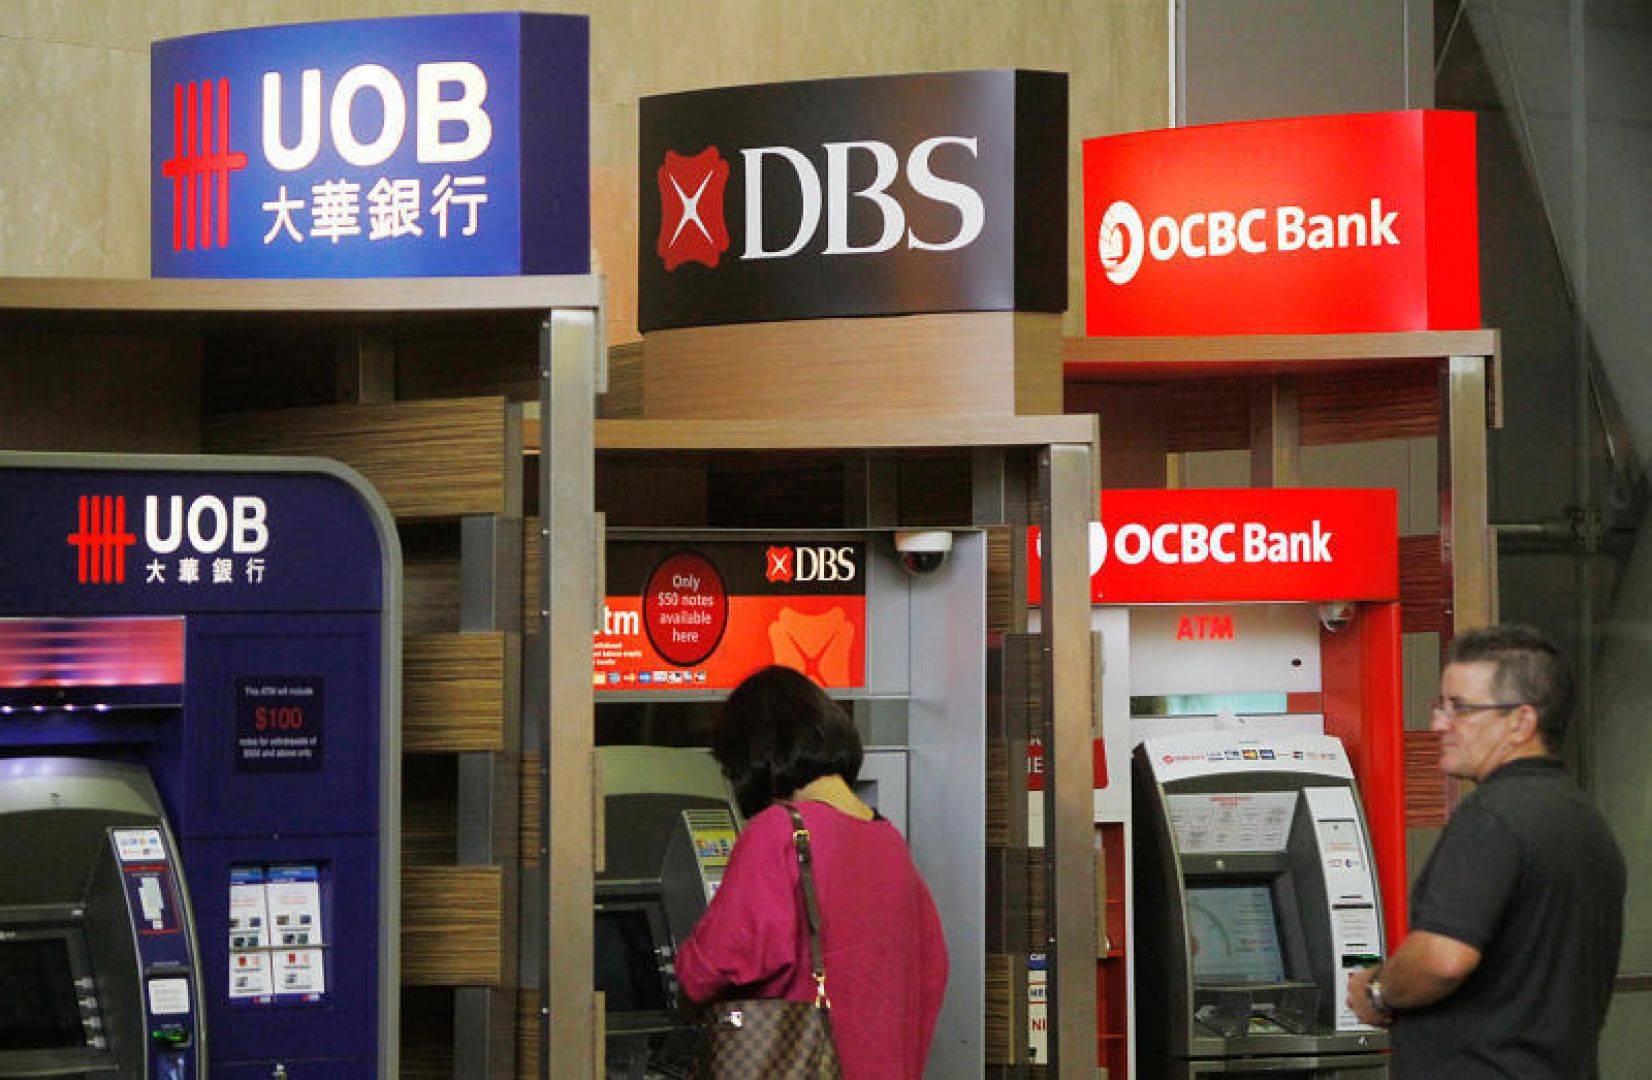 DBS, Bank Of Singapore Seize Opportunities For More Acquisitions In Wealth Mission